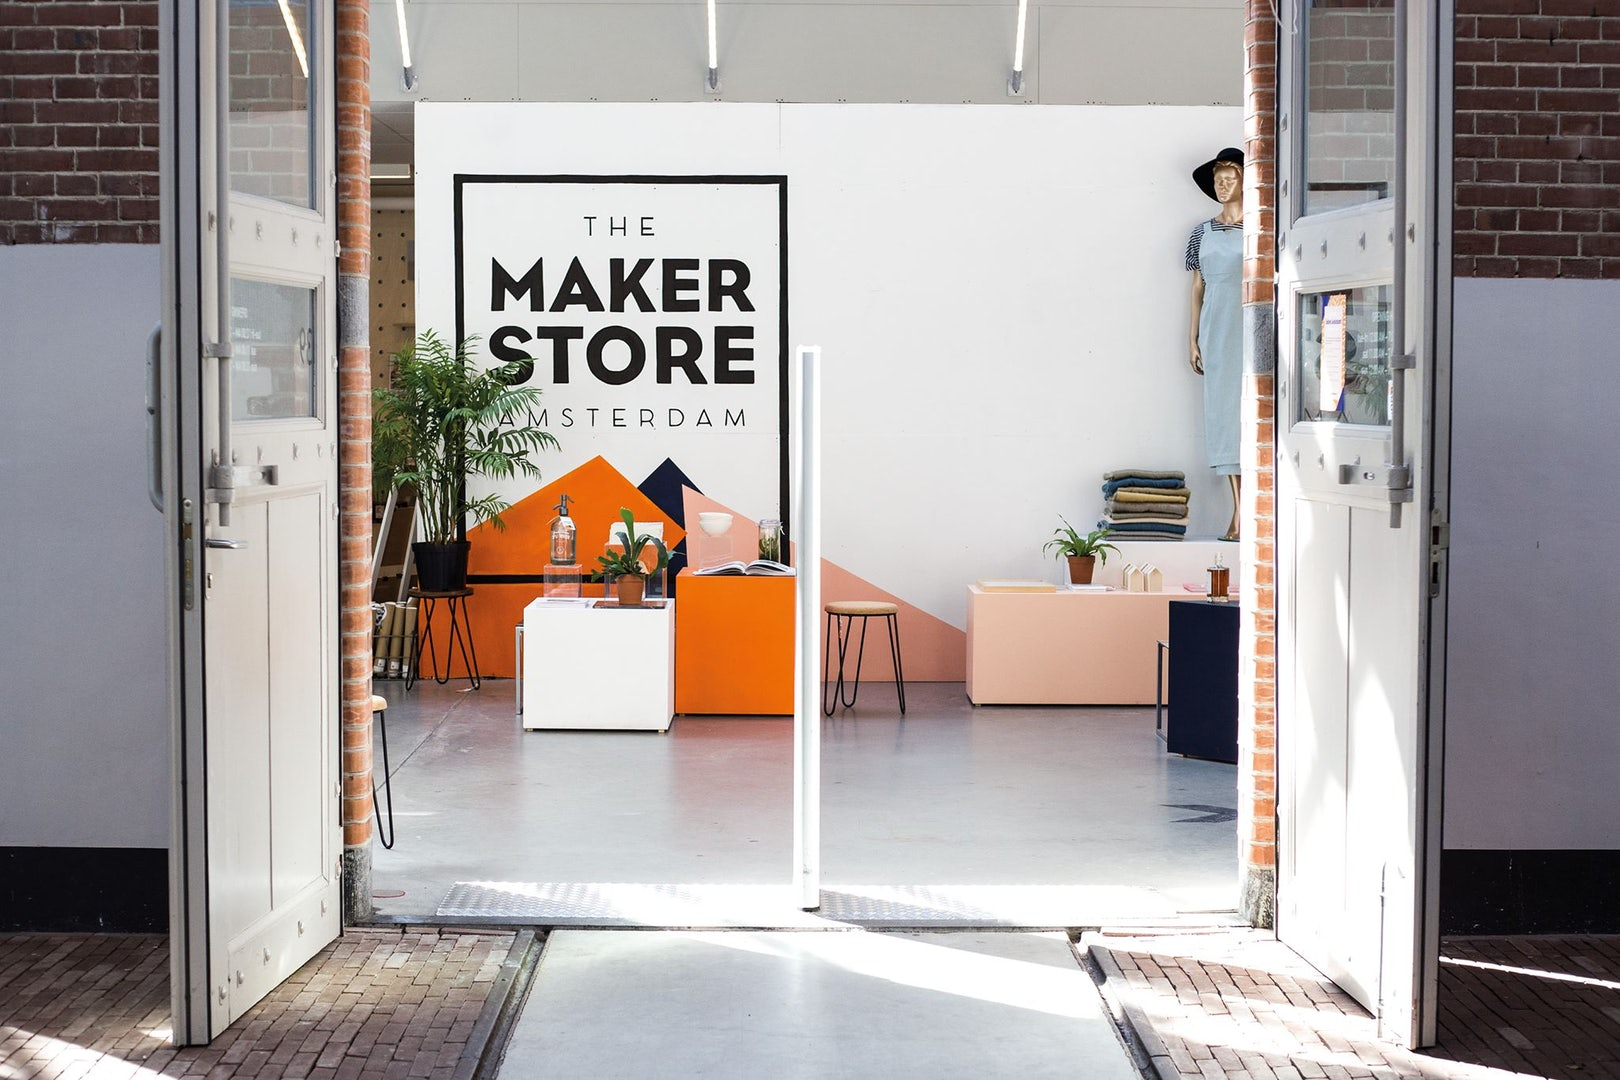 Amsterdam - The Maker Store